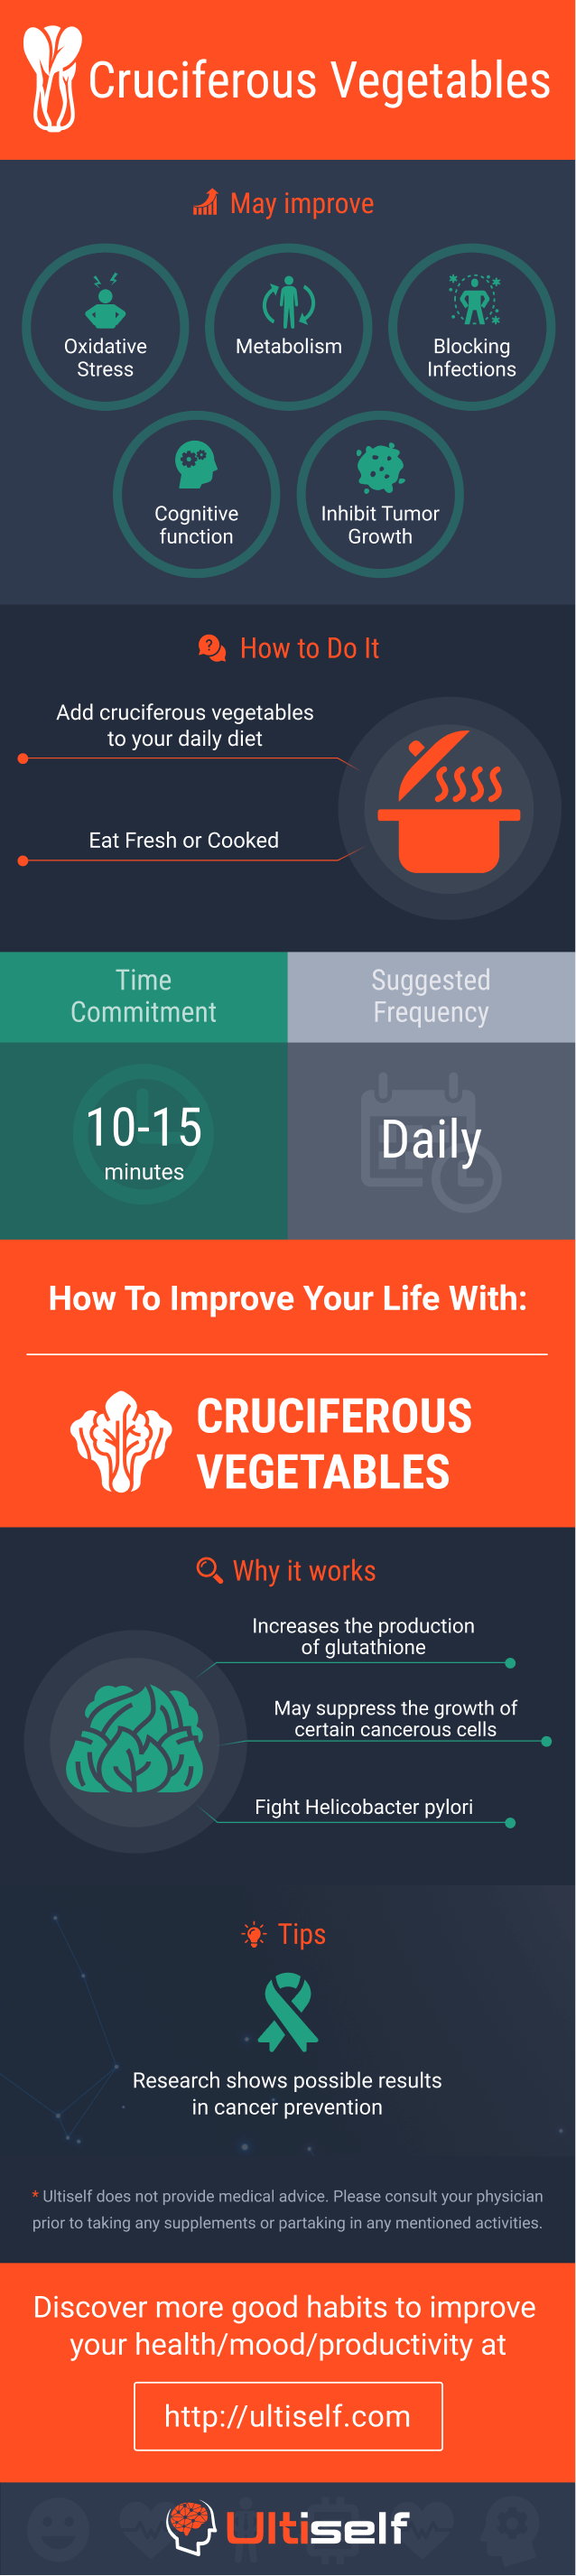 Cruciferous Vegetables infographic